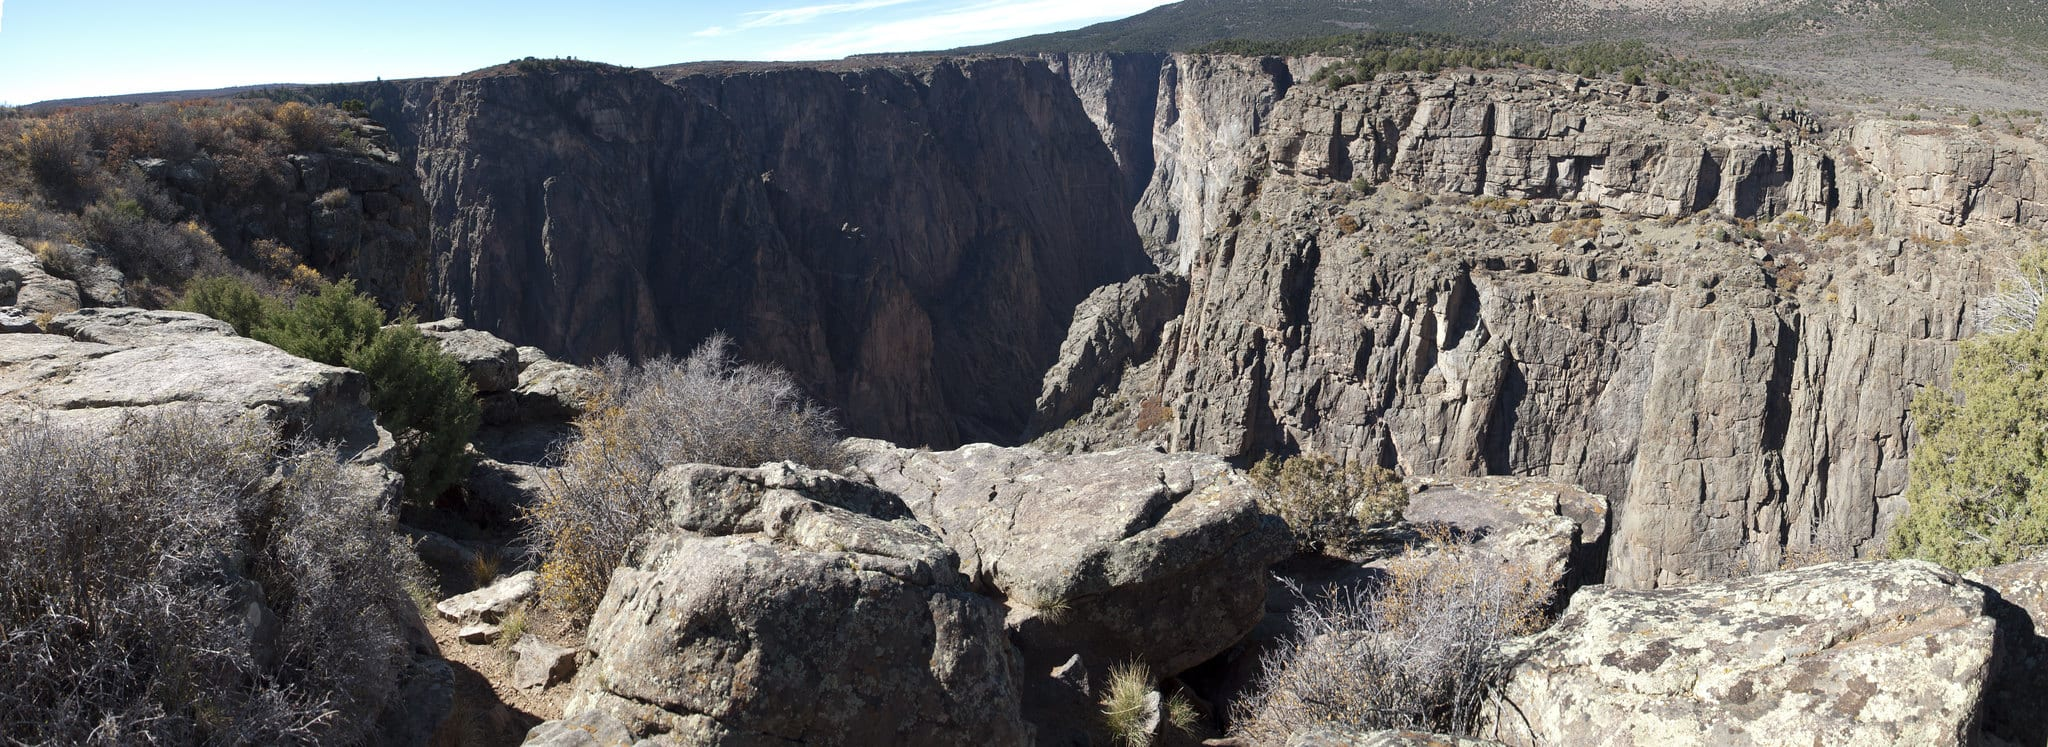 Black Canyon of the Gunnison Panorama